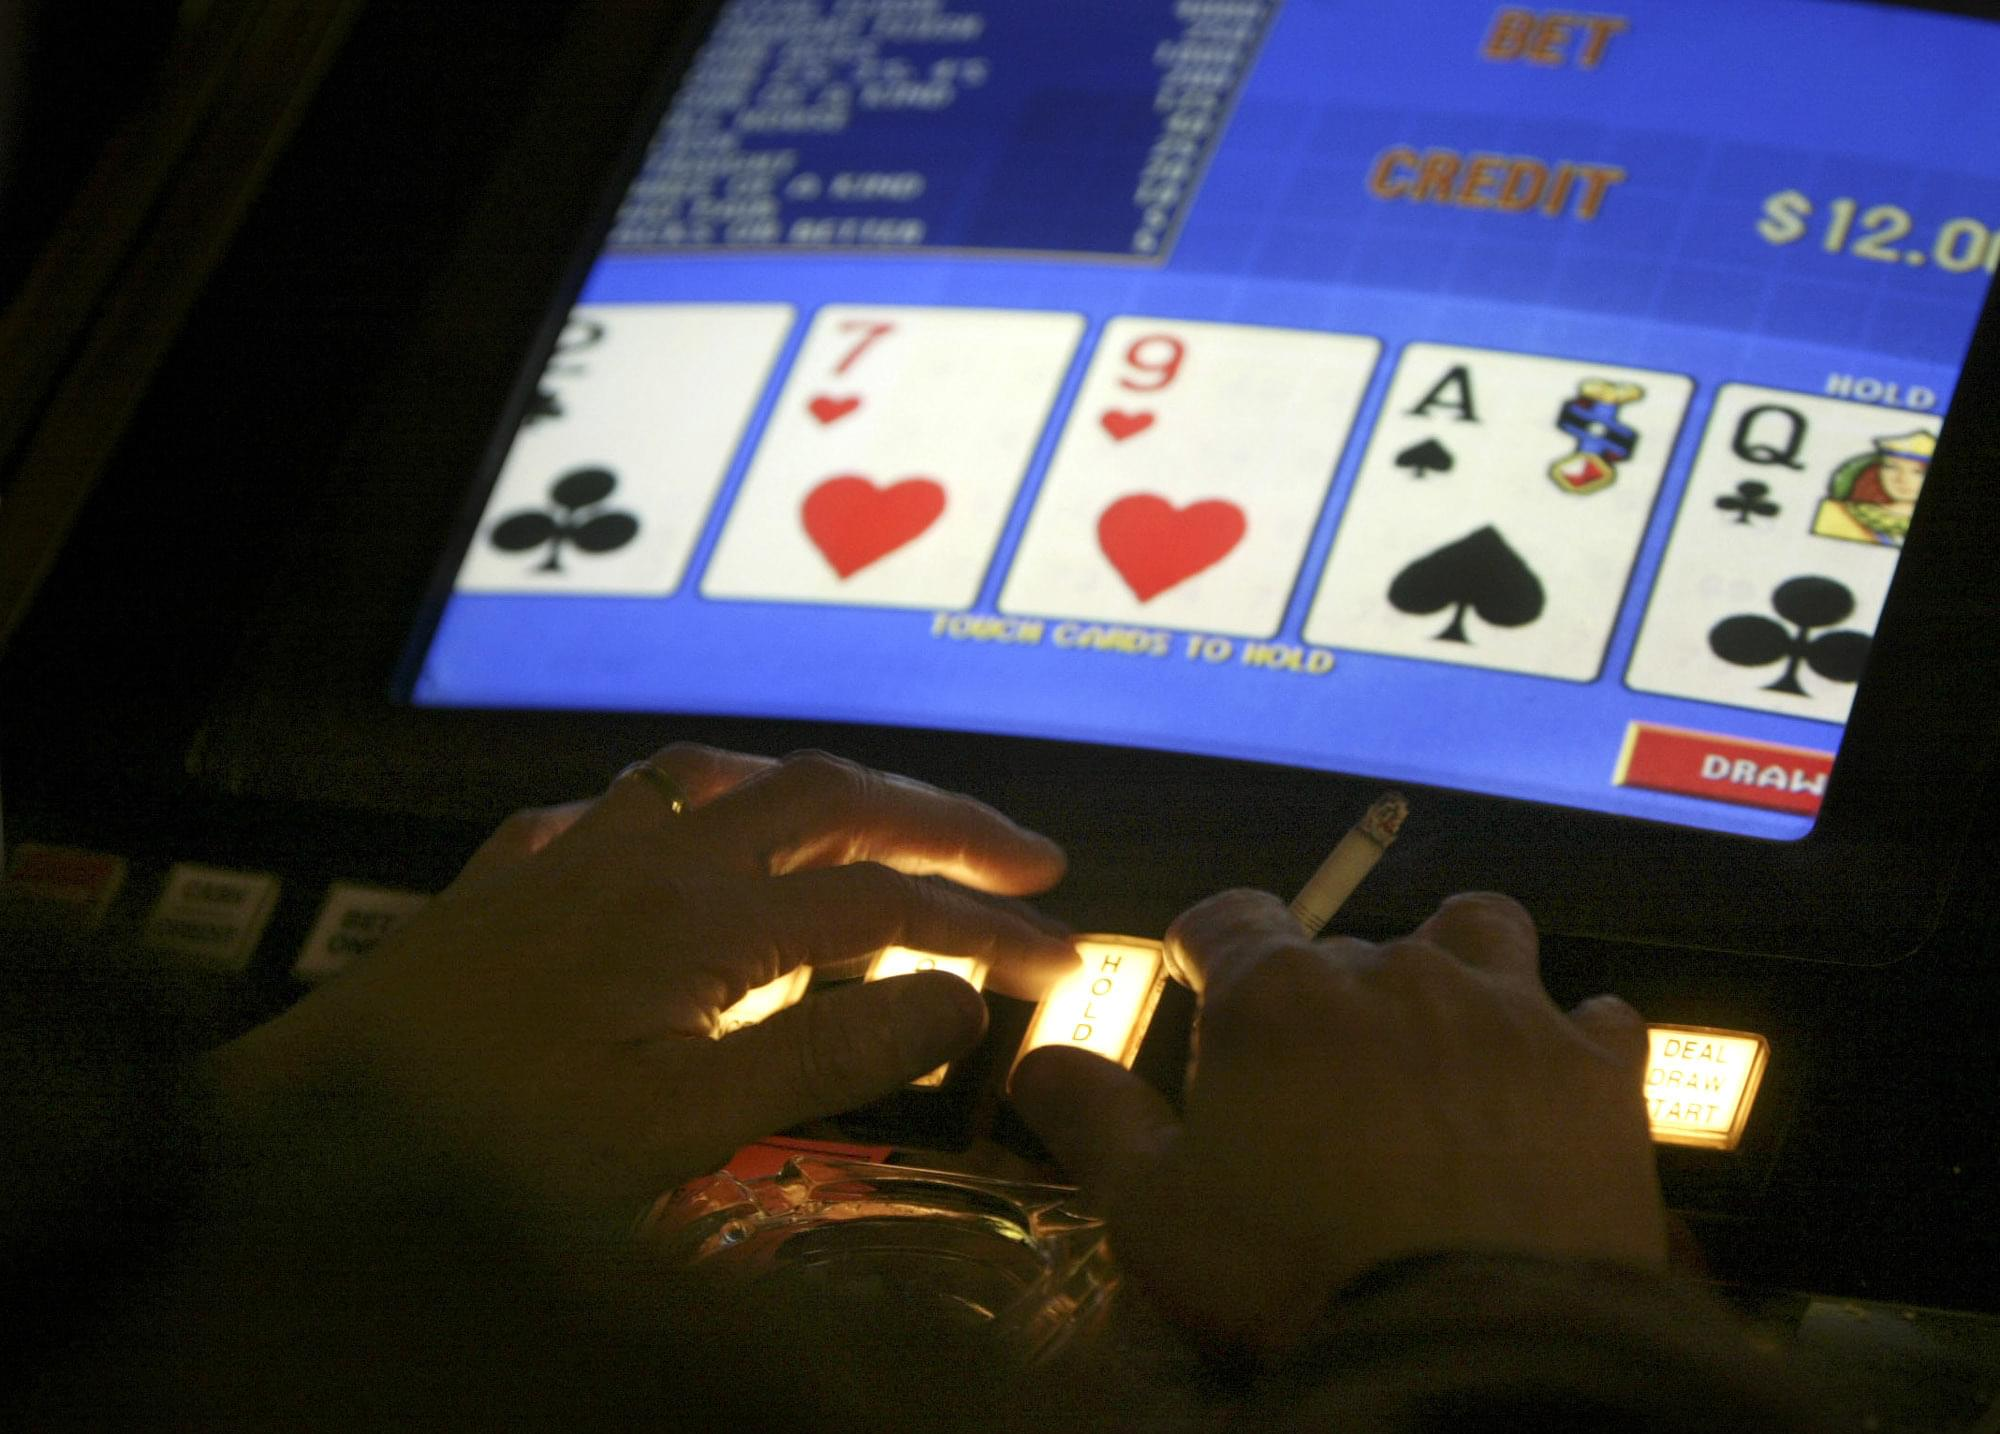 Alderman debate if sweepstakes terminals are unlicensed casinos